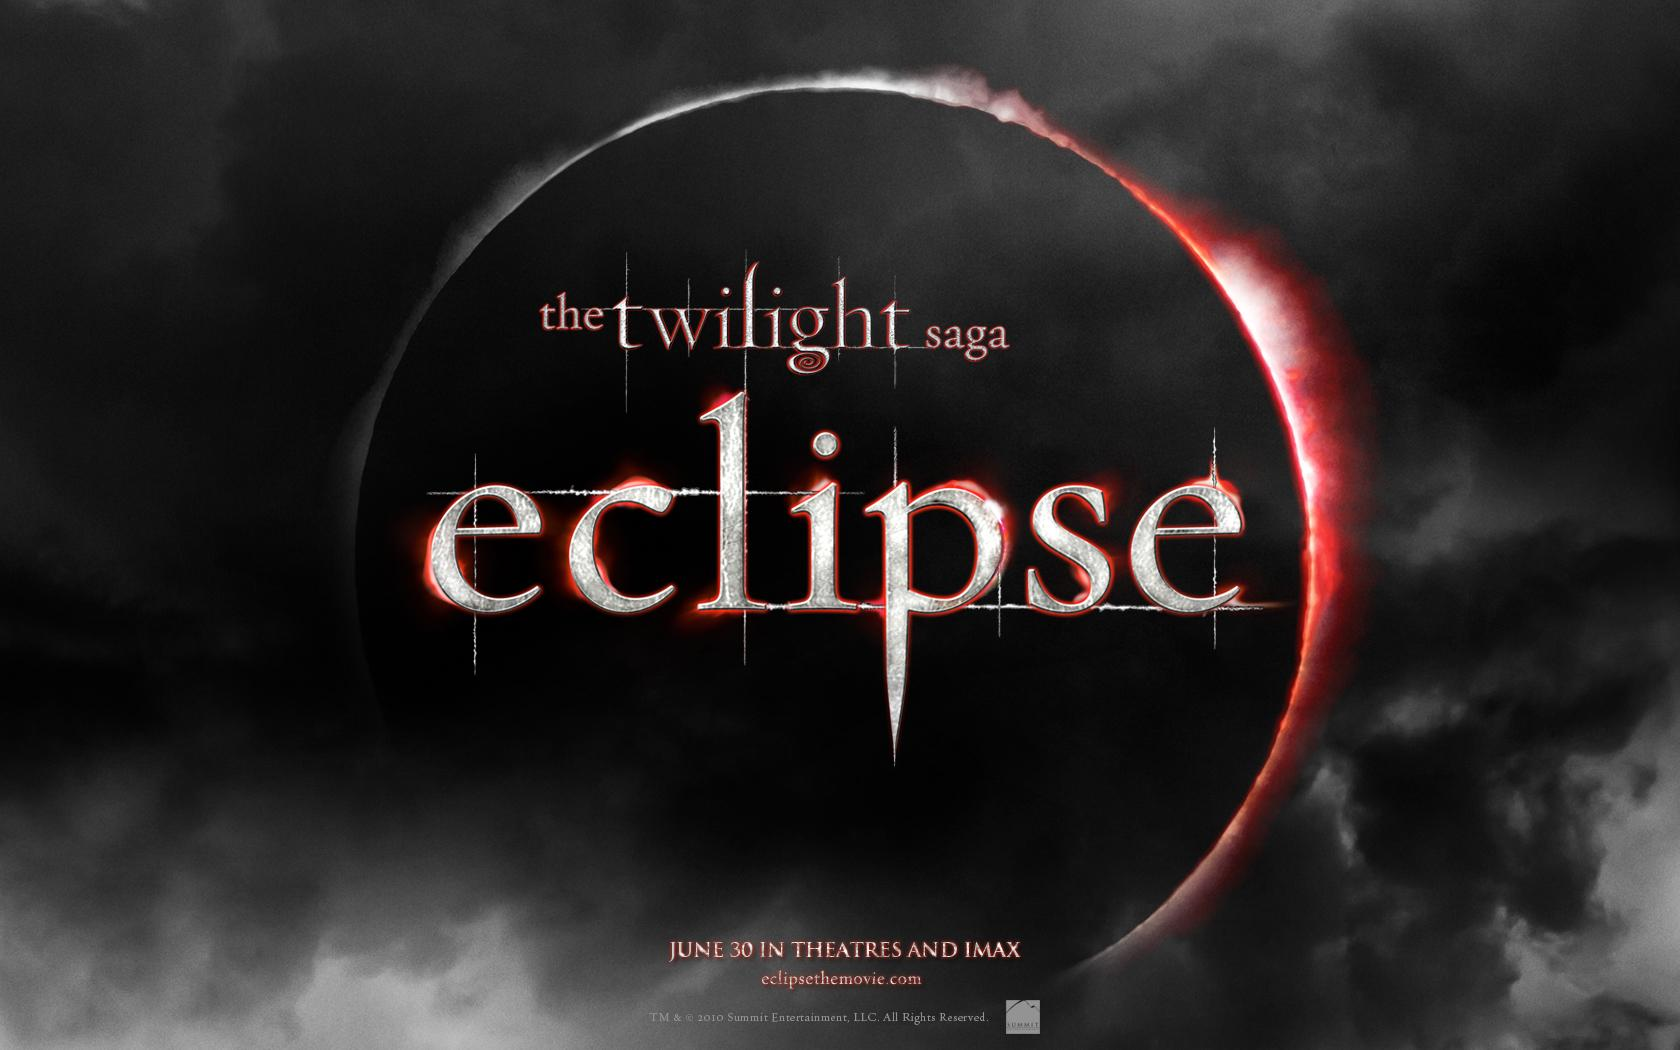 how to open a dp file with eclipse